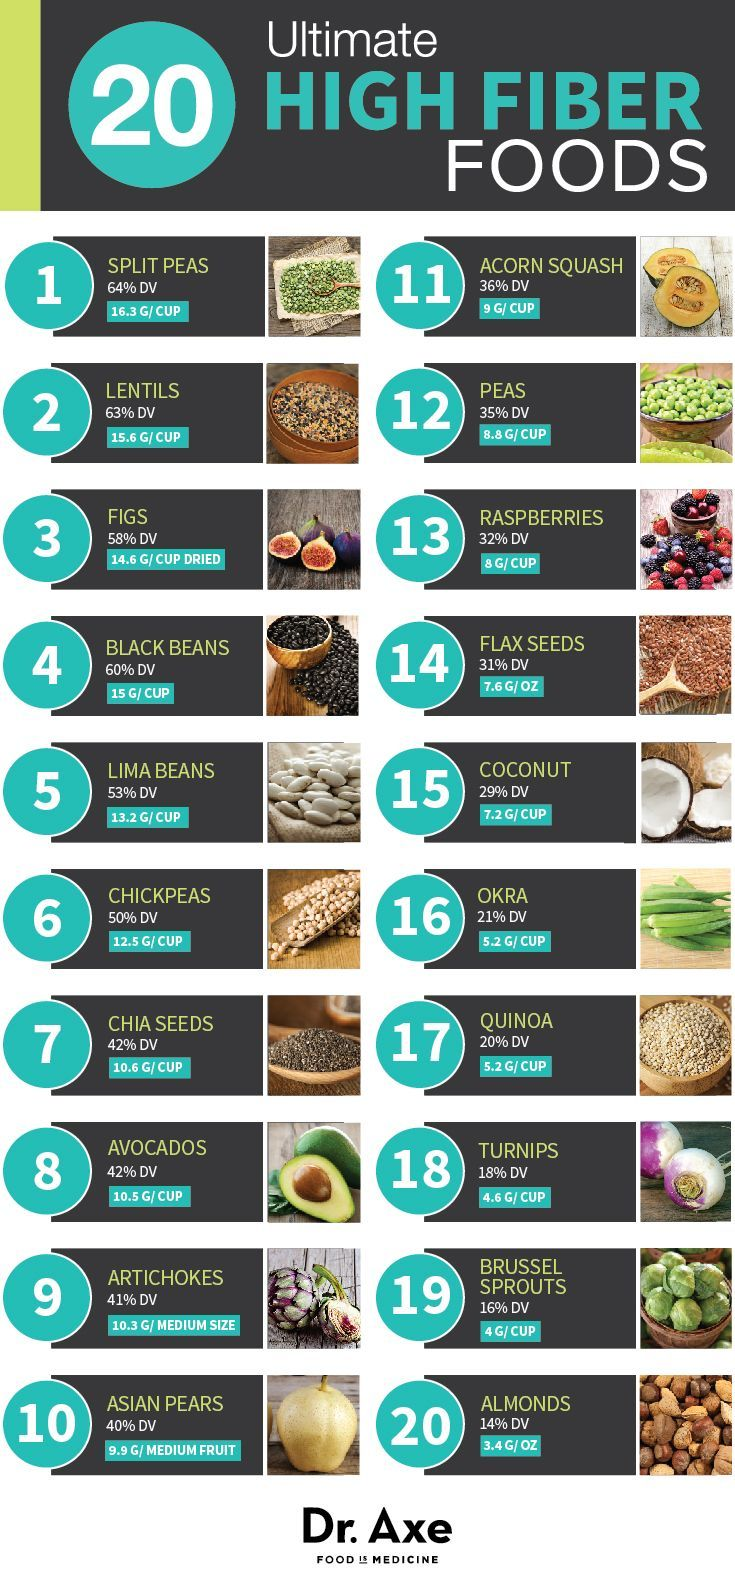 For good health what to eat - Fibre Is Essential For Good Digestion And Helps Utilise The Food We Eat To Maximum Efficiency